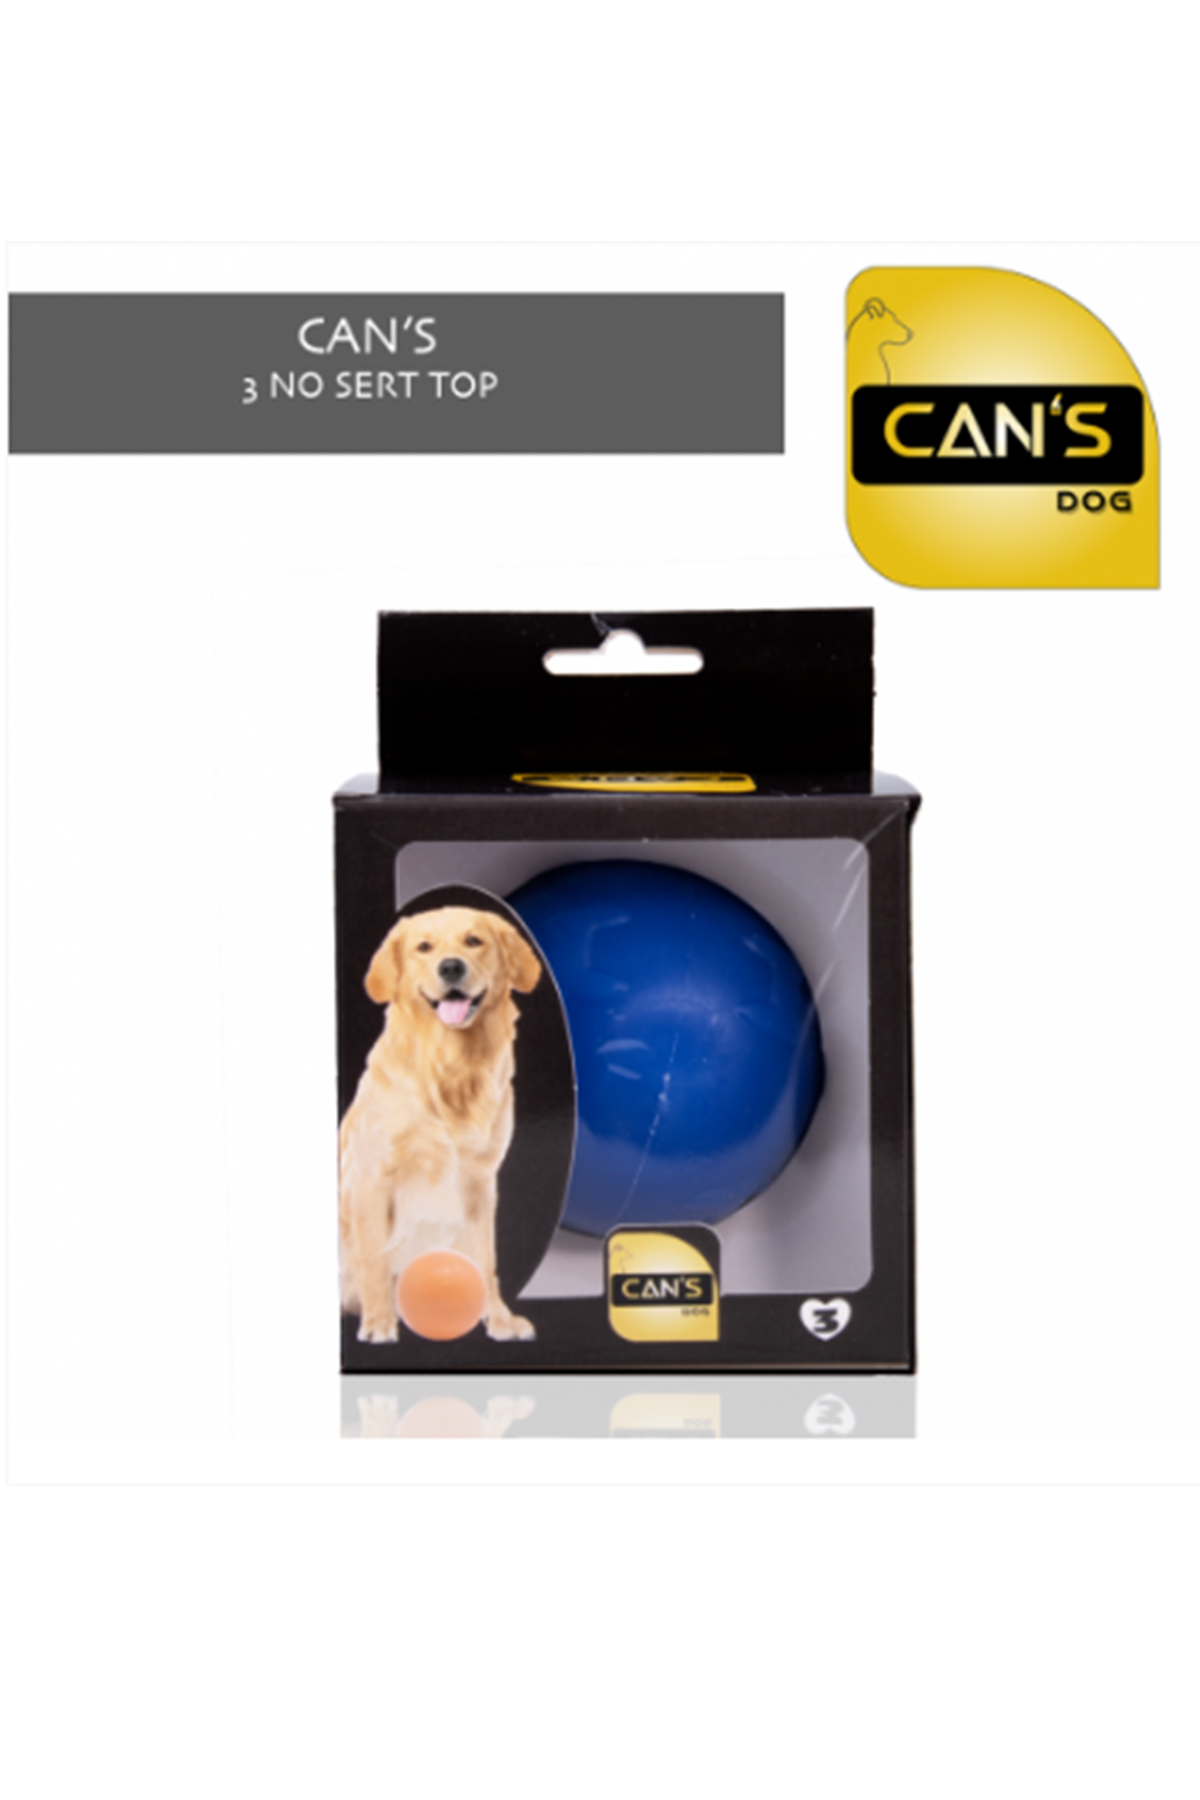 CAN'S DOG BALL (3 NO)